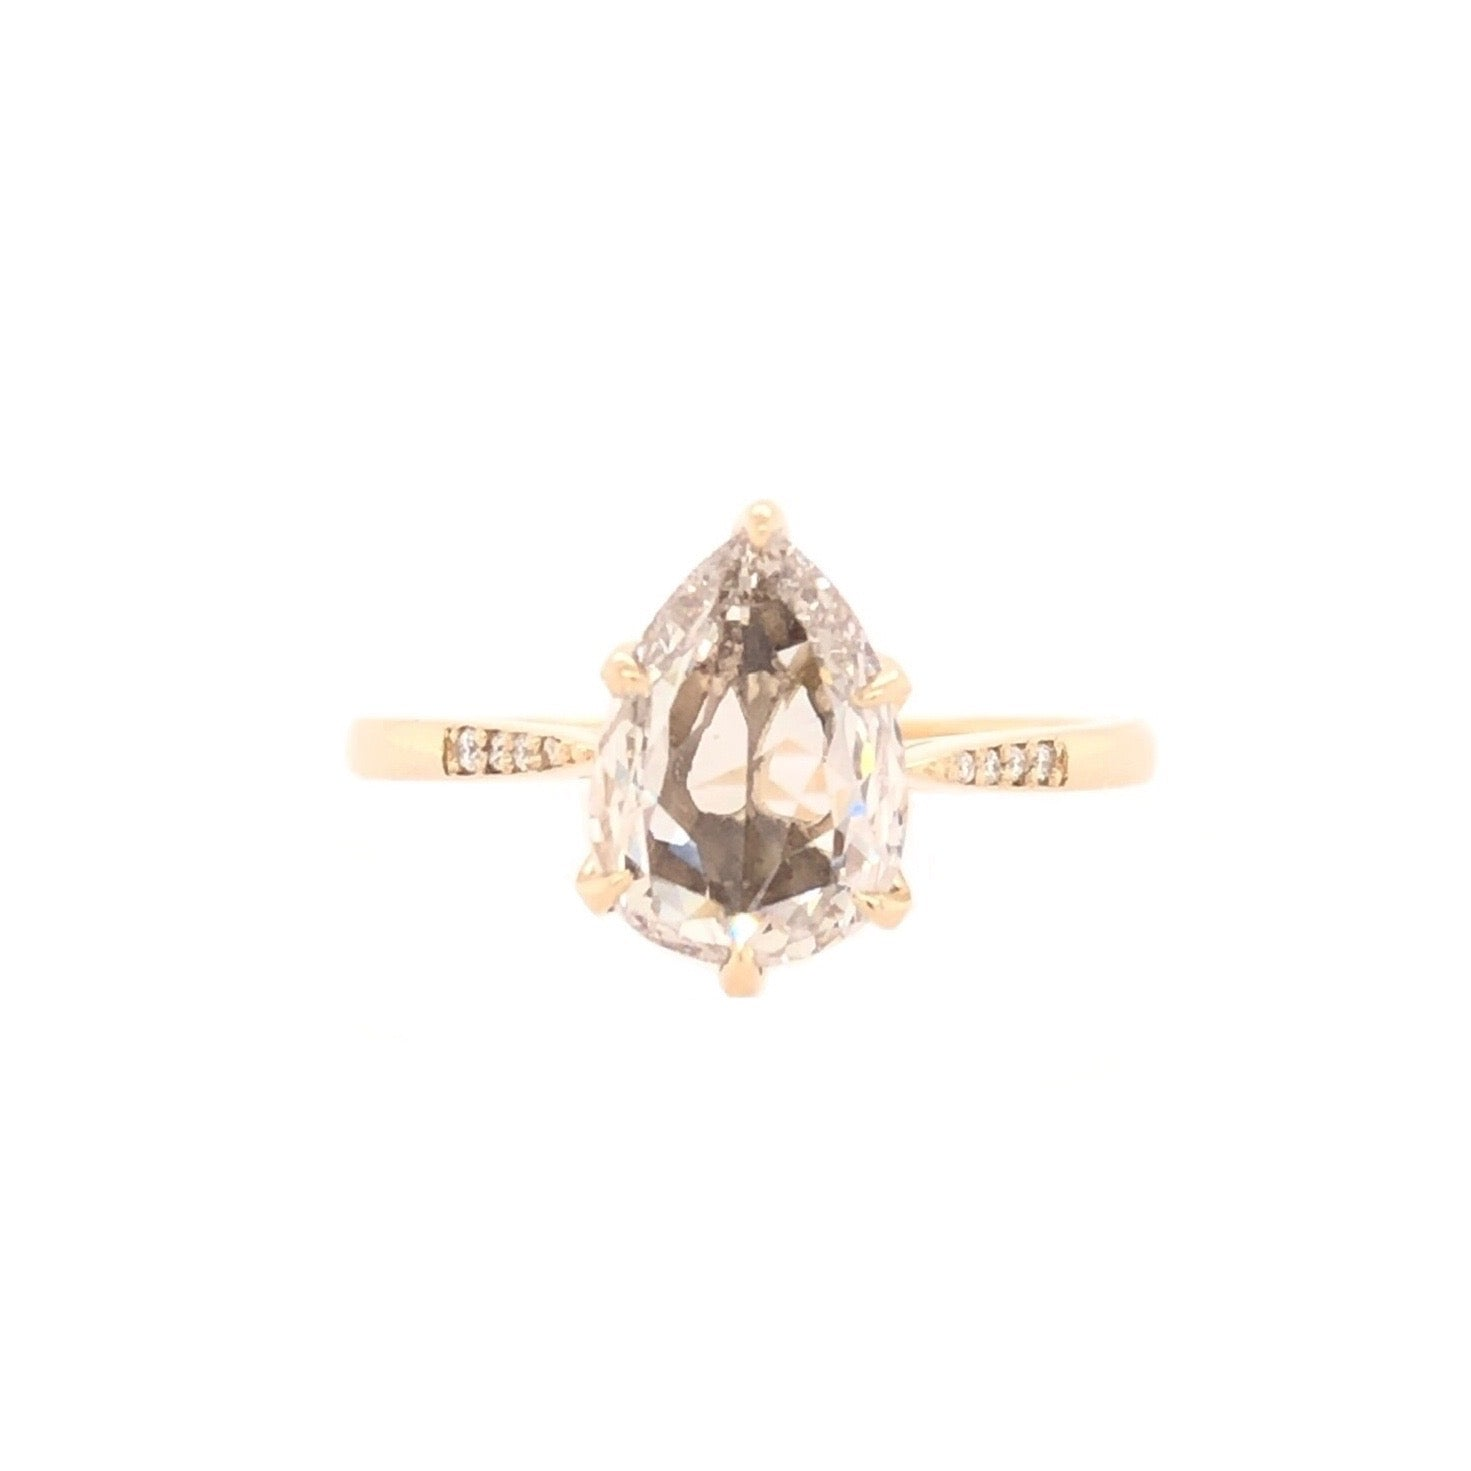 Lizette Ring